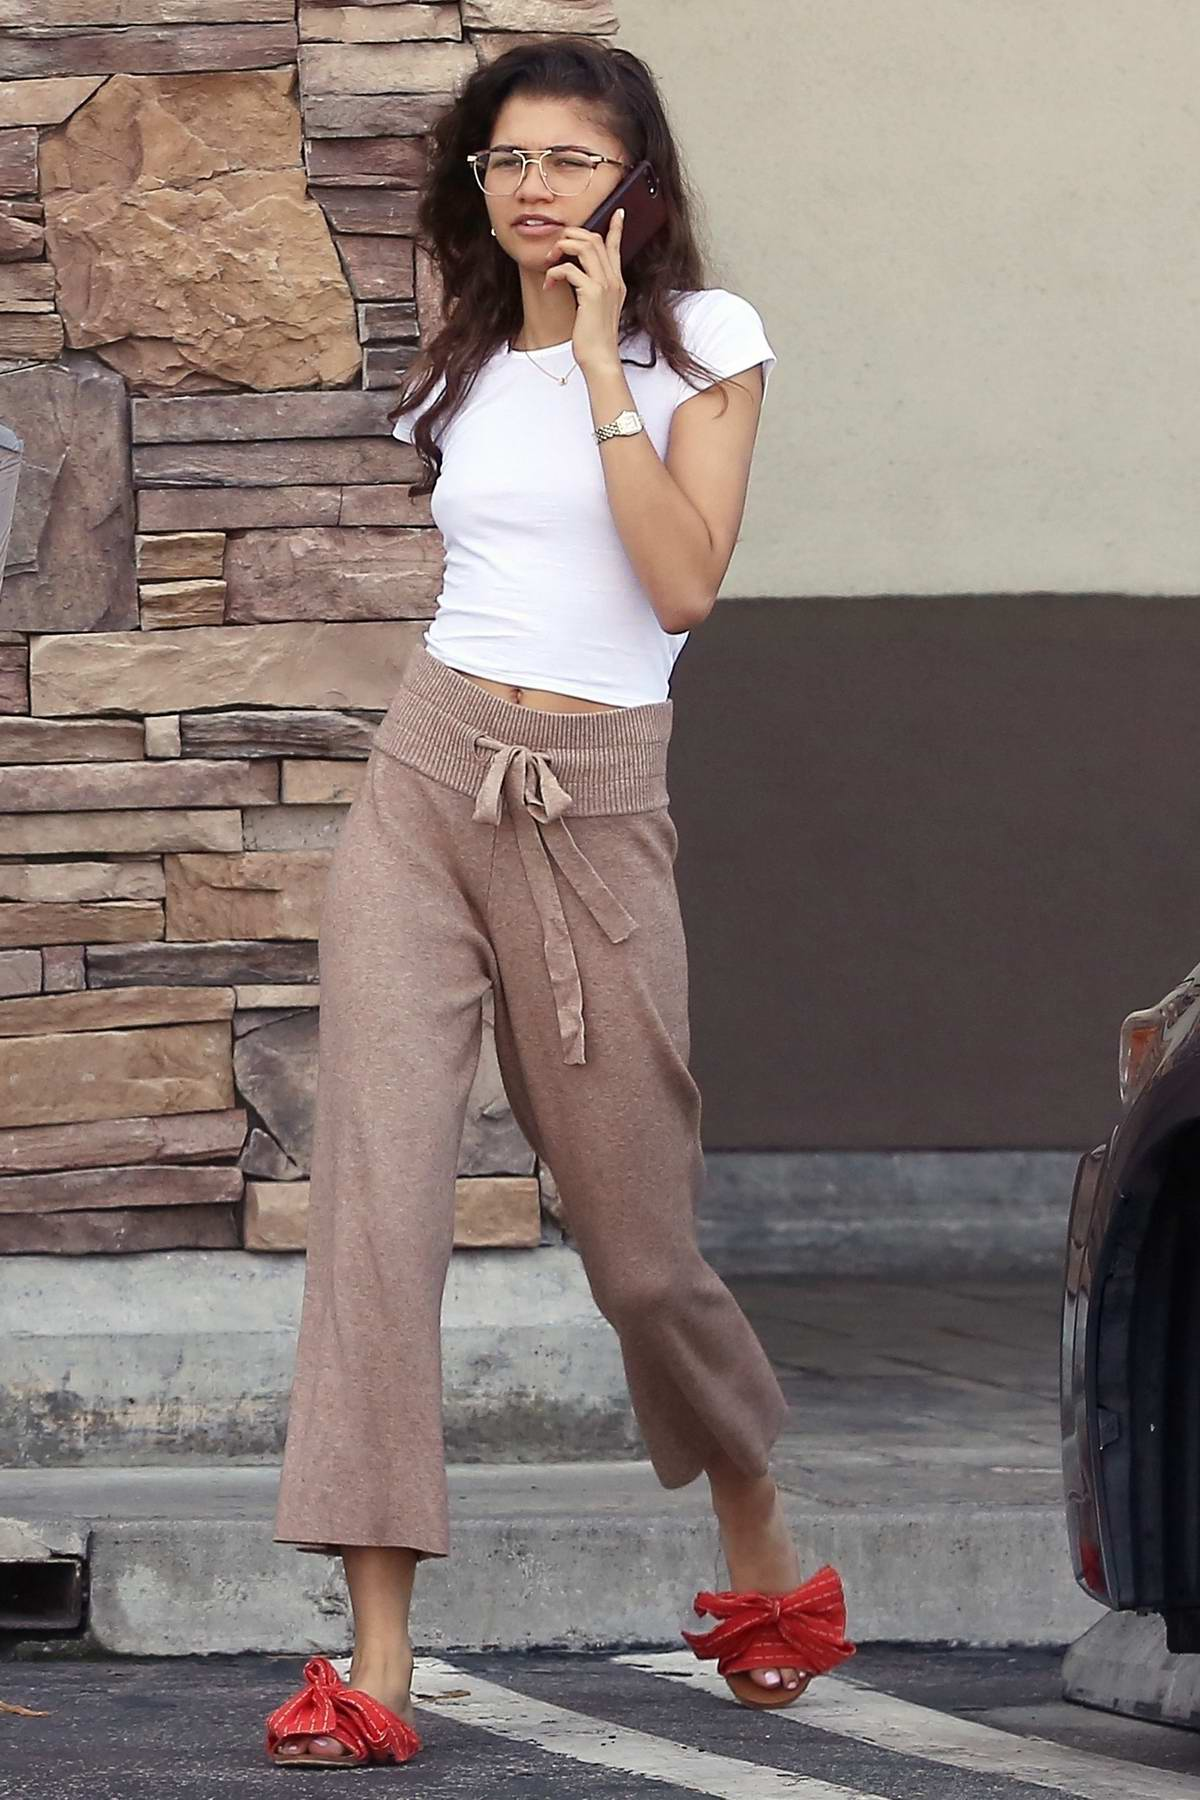 Zendaya keeps it casual during a shopping trip to Lowe's and Micheal's art supplies store in Los Angeles